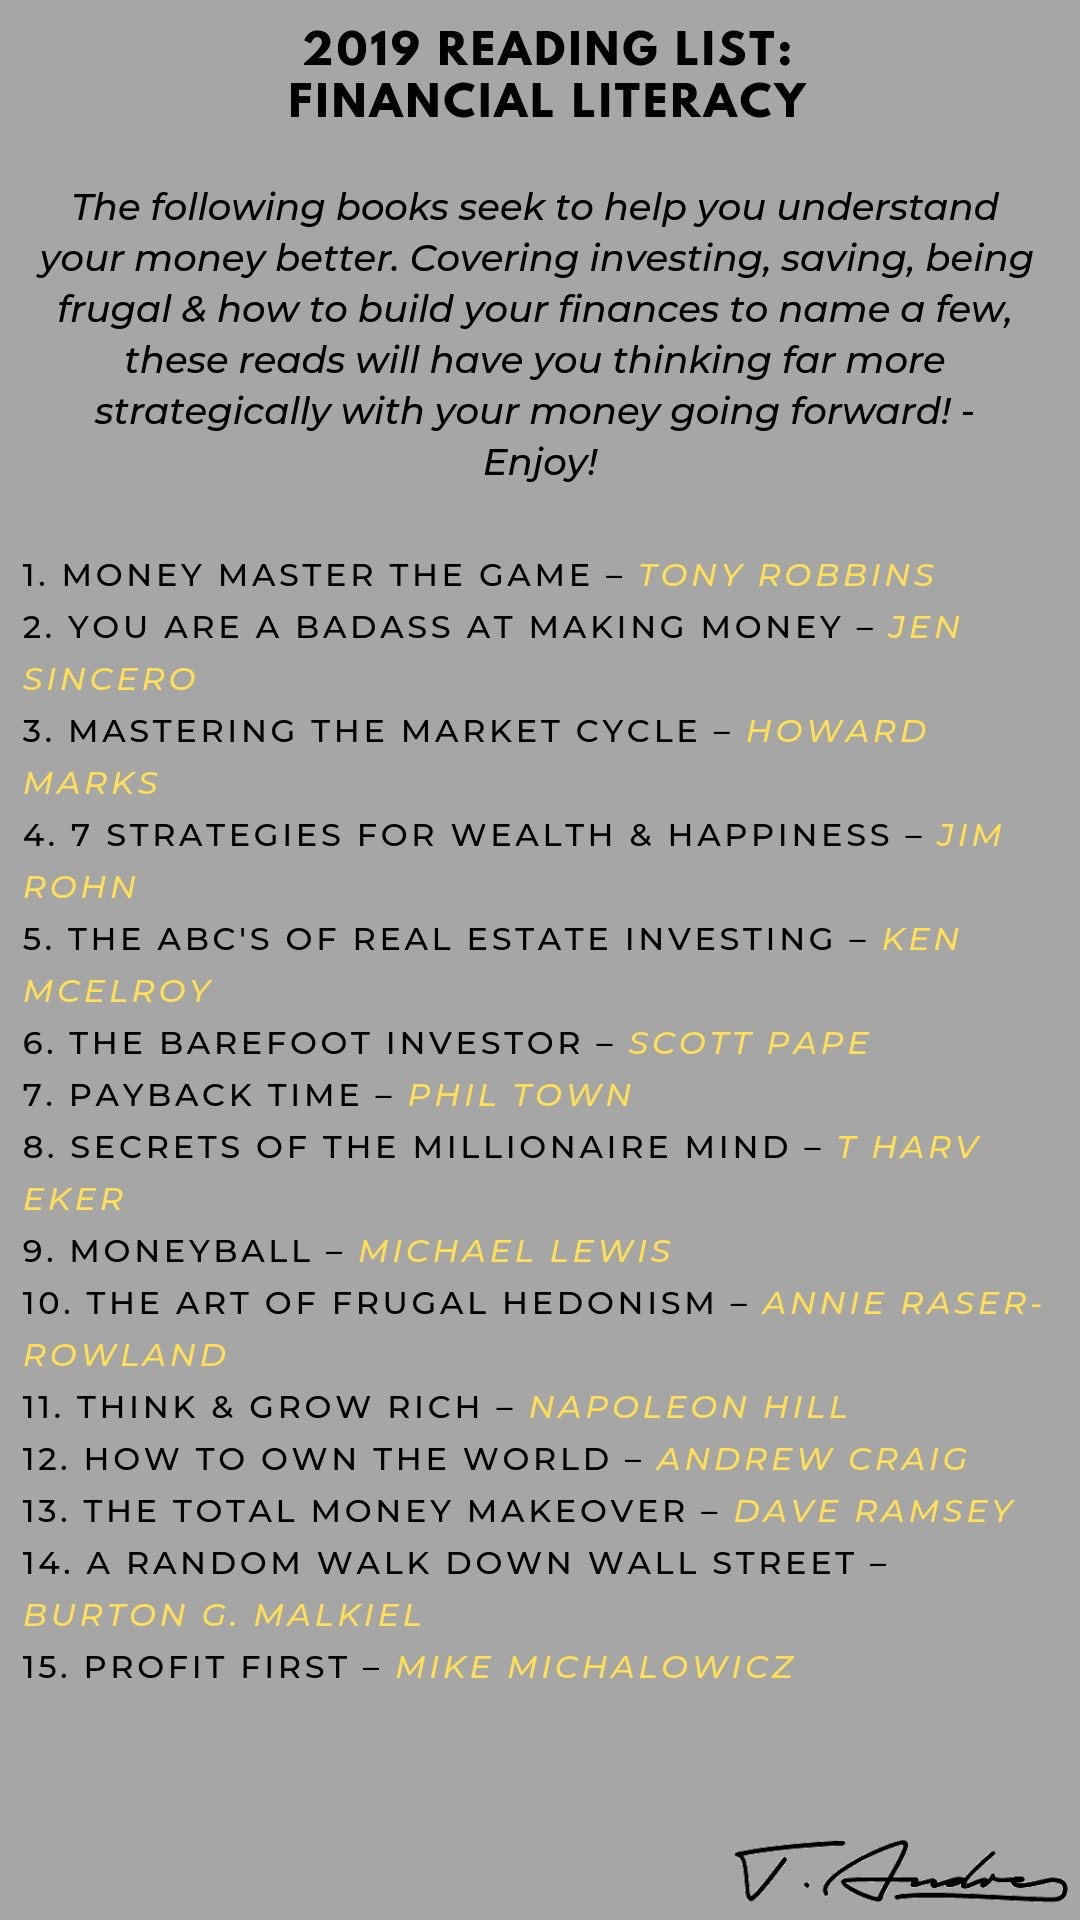 2019 Reading List, Financial Literacy curated by  Triston Andre